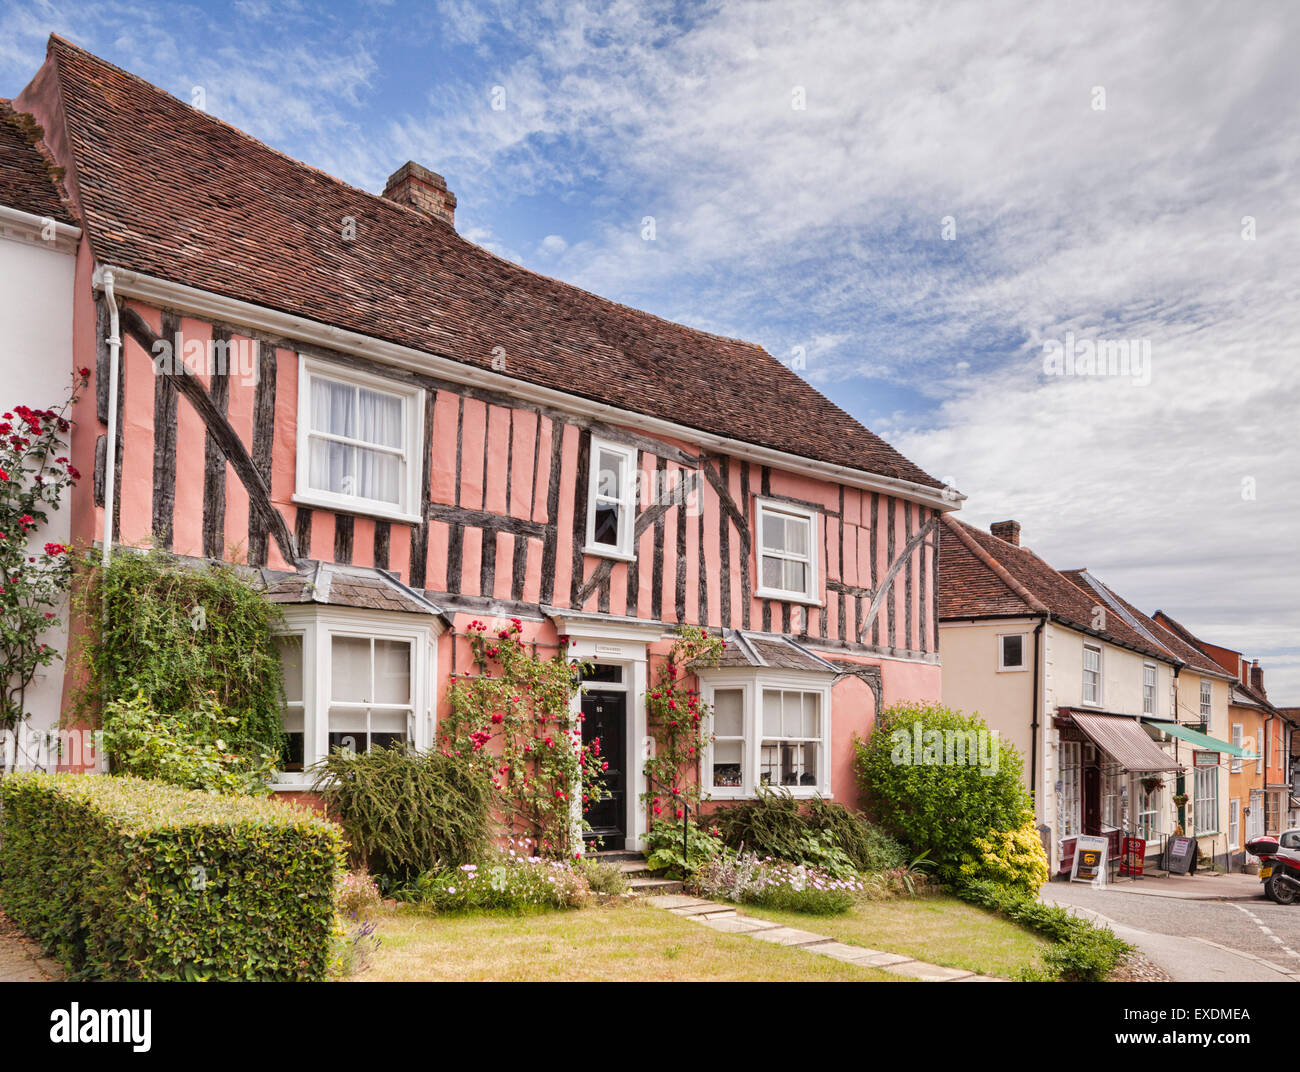 Half timbered house in Lavenham, Suffolk, England. - Stock Image